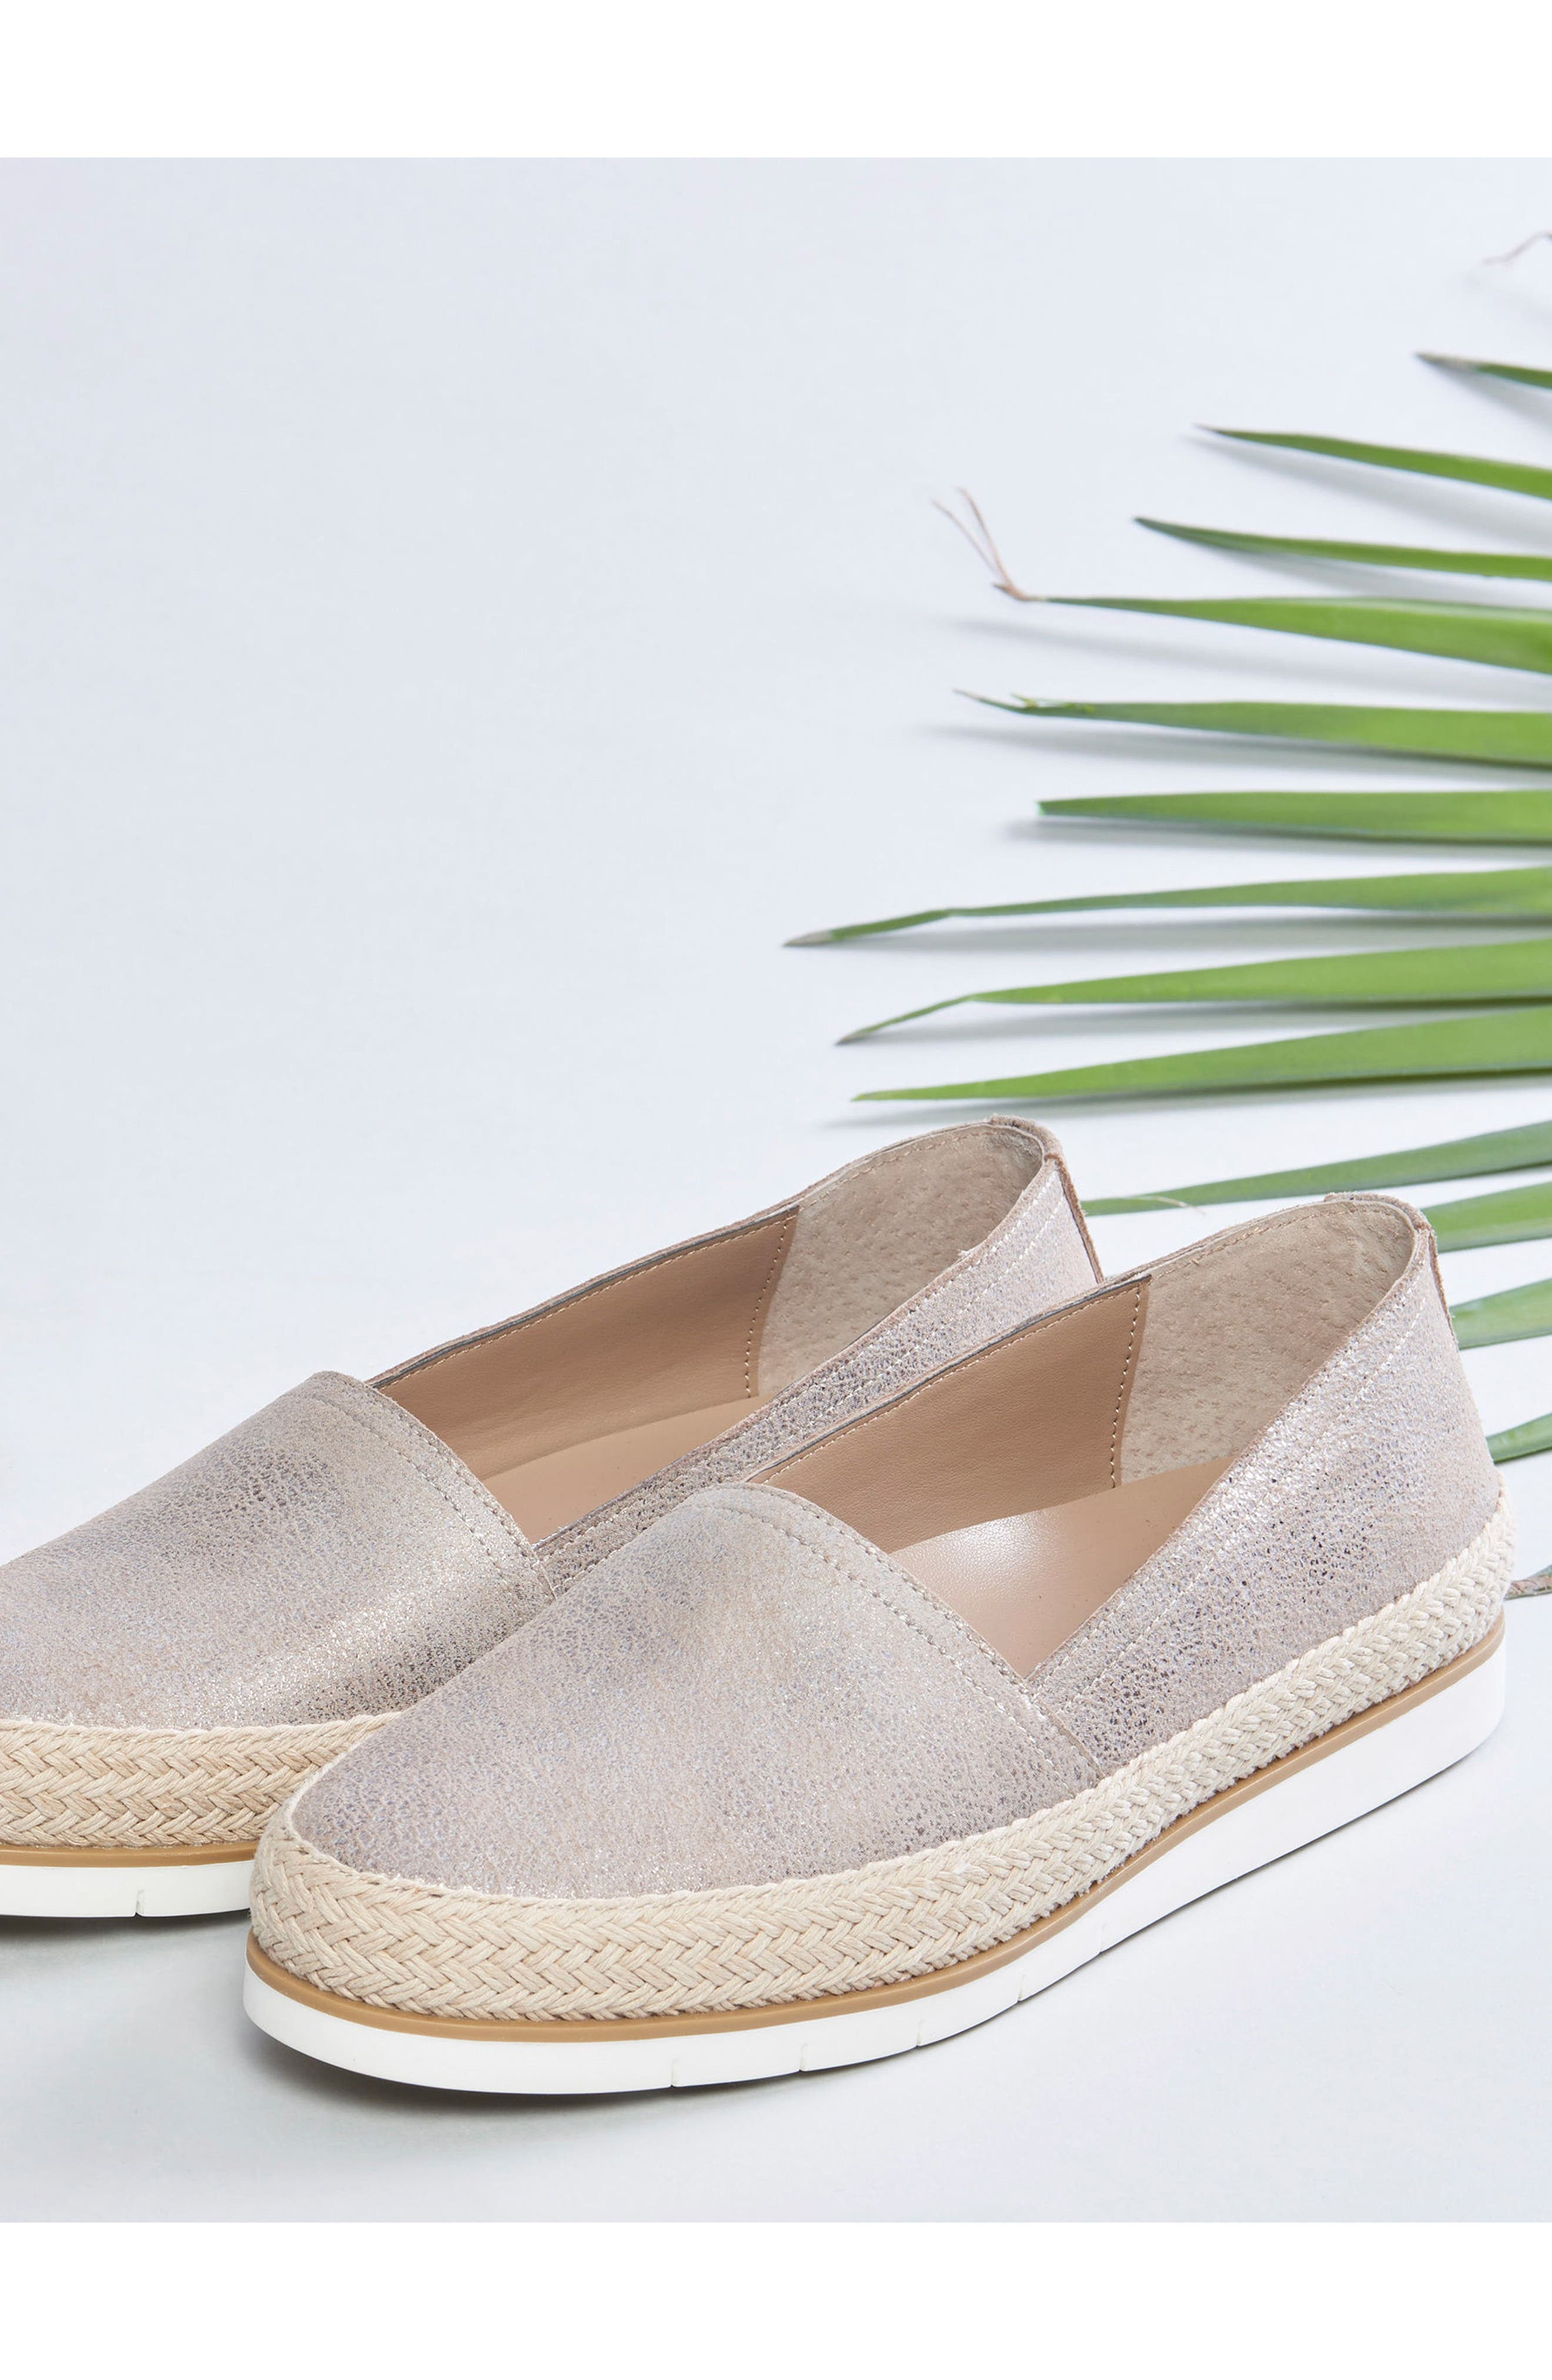 Palm Slip-On Sneaker,                             Alternate thumbnail 7, color,                             TAUPE FABRIC